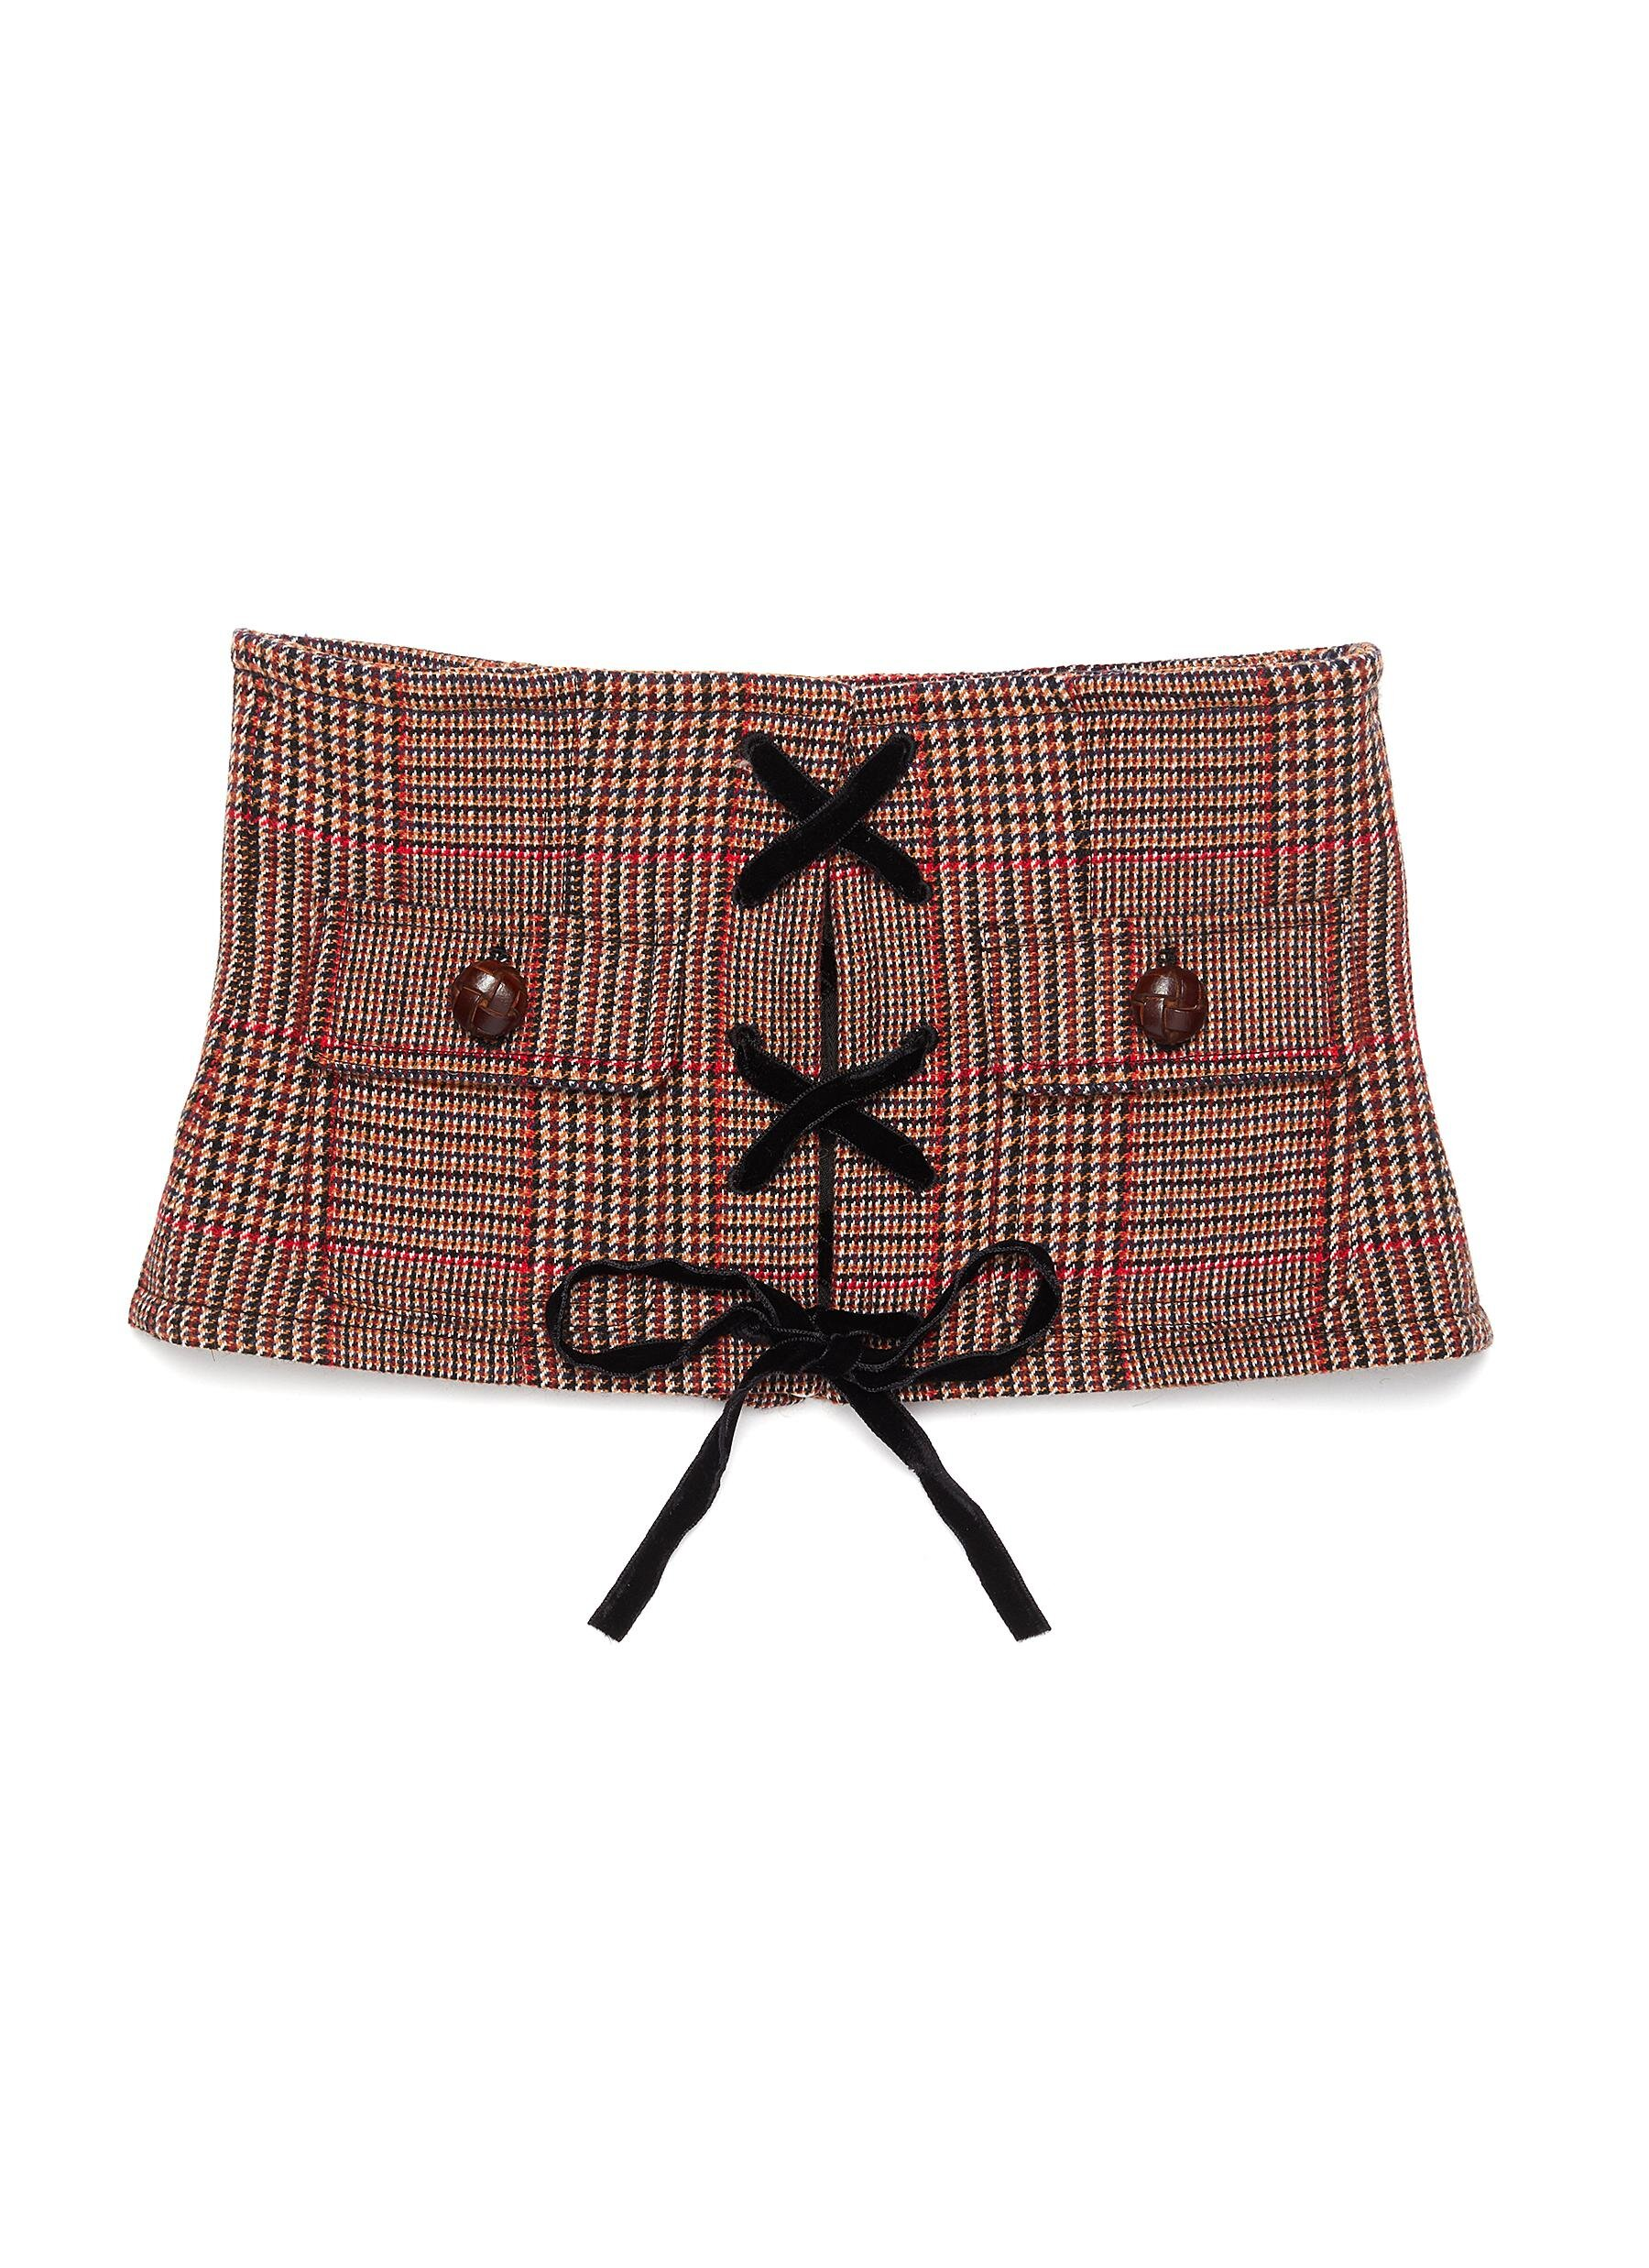 Miu Miu Lace-up Front Houndstooth Check Plaid Bustier  HKD$5,600